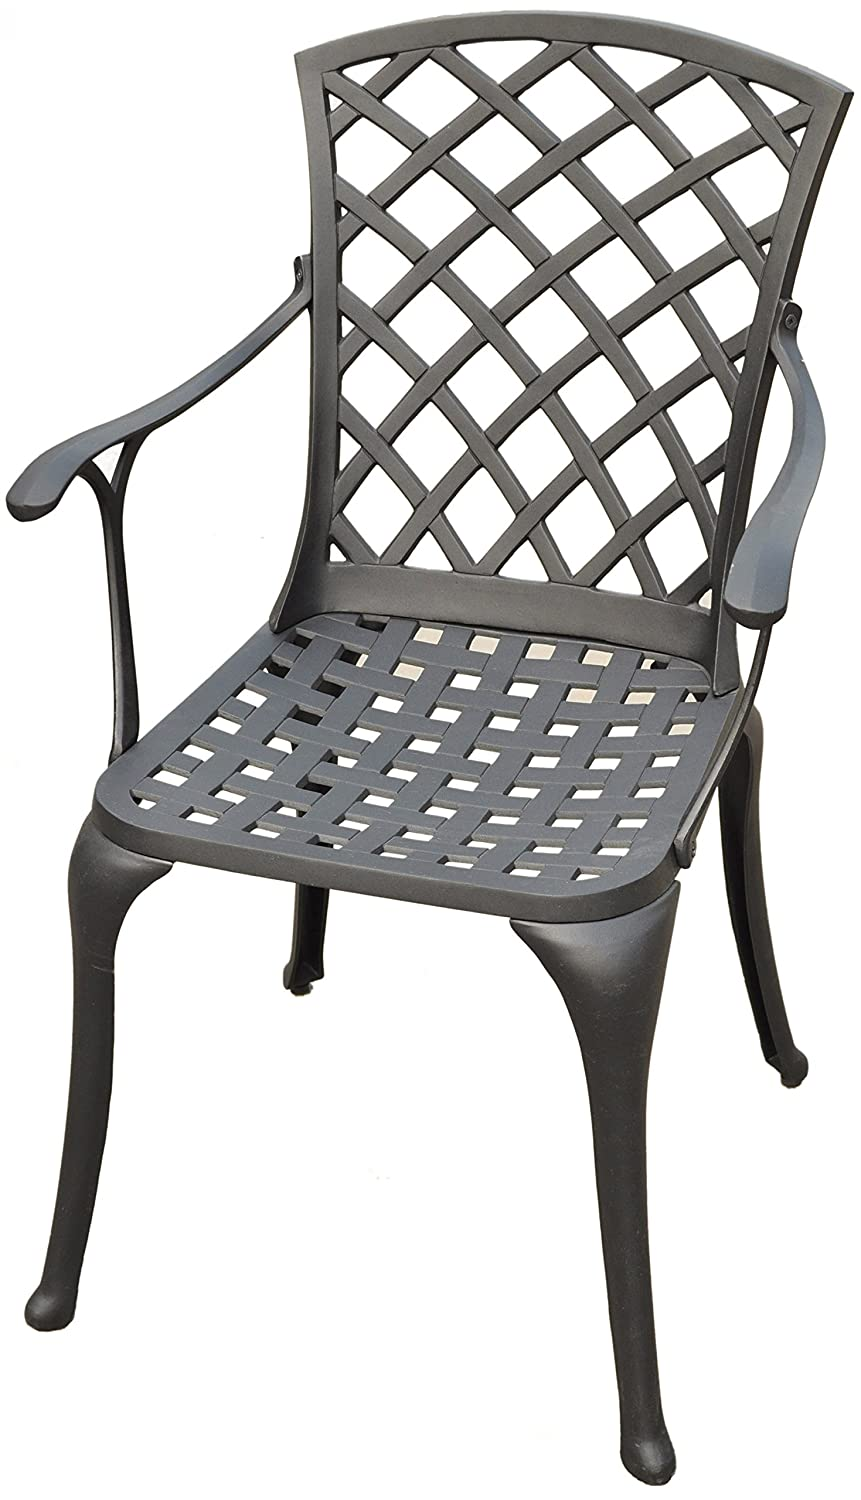 Crosley Furniture Sedona Solid-Cast Aluminum Outdoor High-Back Arm Chair - Black (Set of 2)